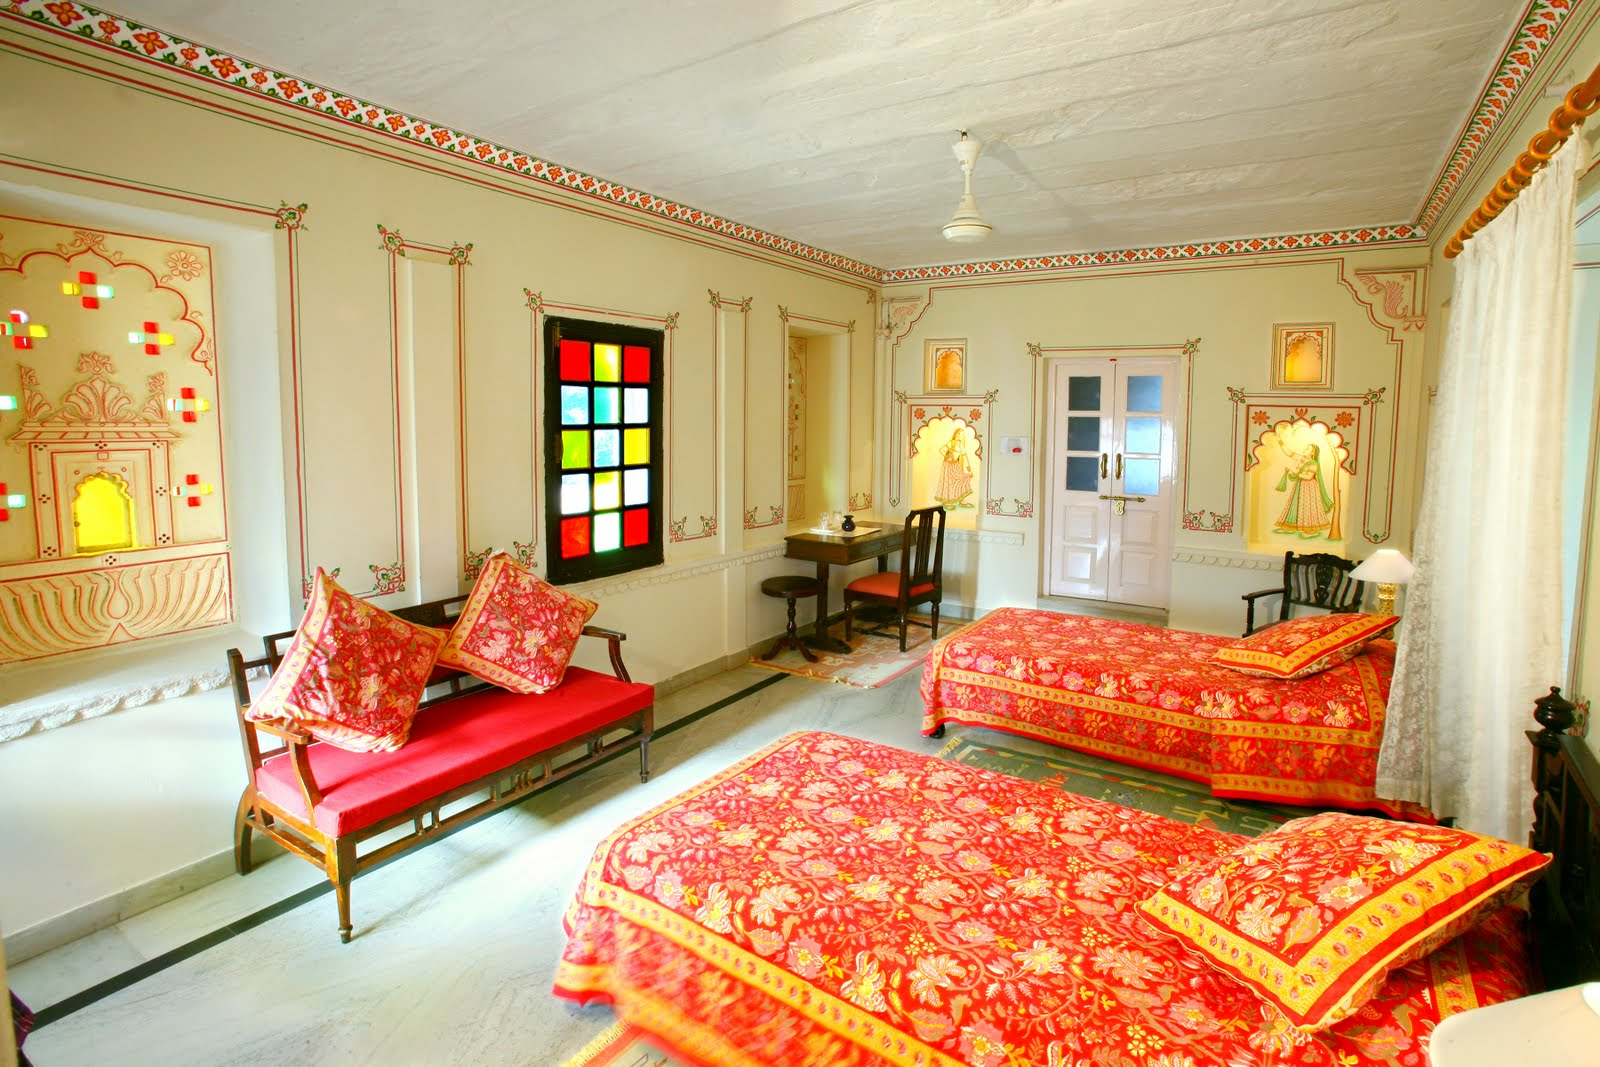 Rajasthani style interior design ideas palace interiors for Indian traditional interior design ideas